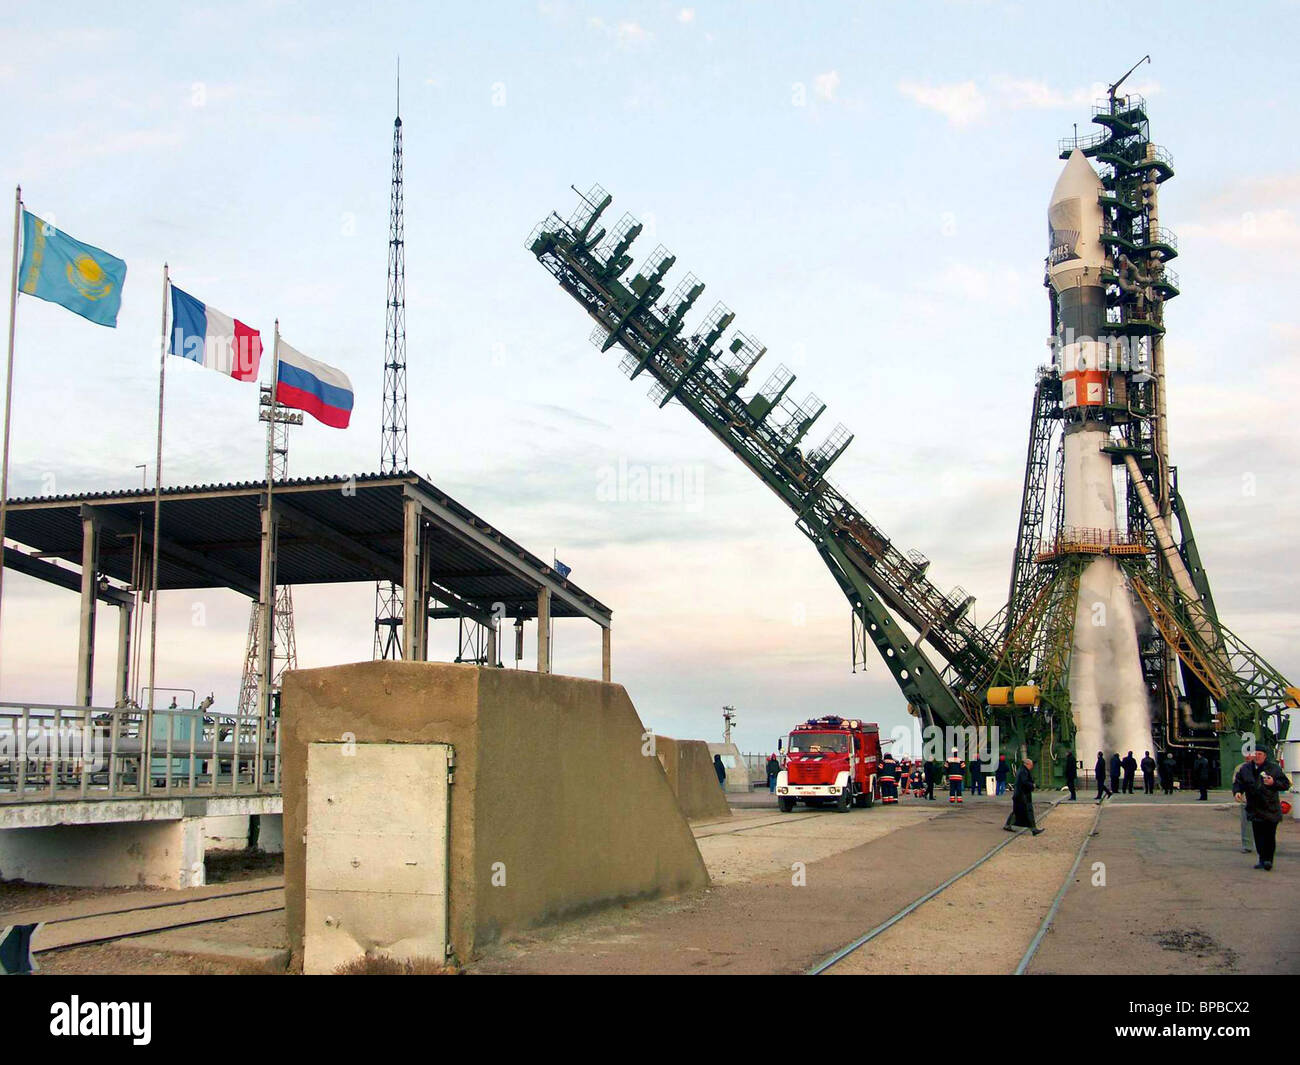 Venus Express, first ESA Venus exploration mission, launched from Baikonur Cosmodrome - Stock Image